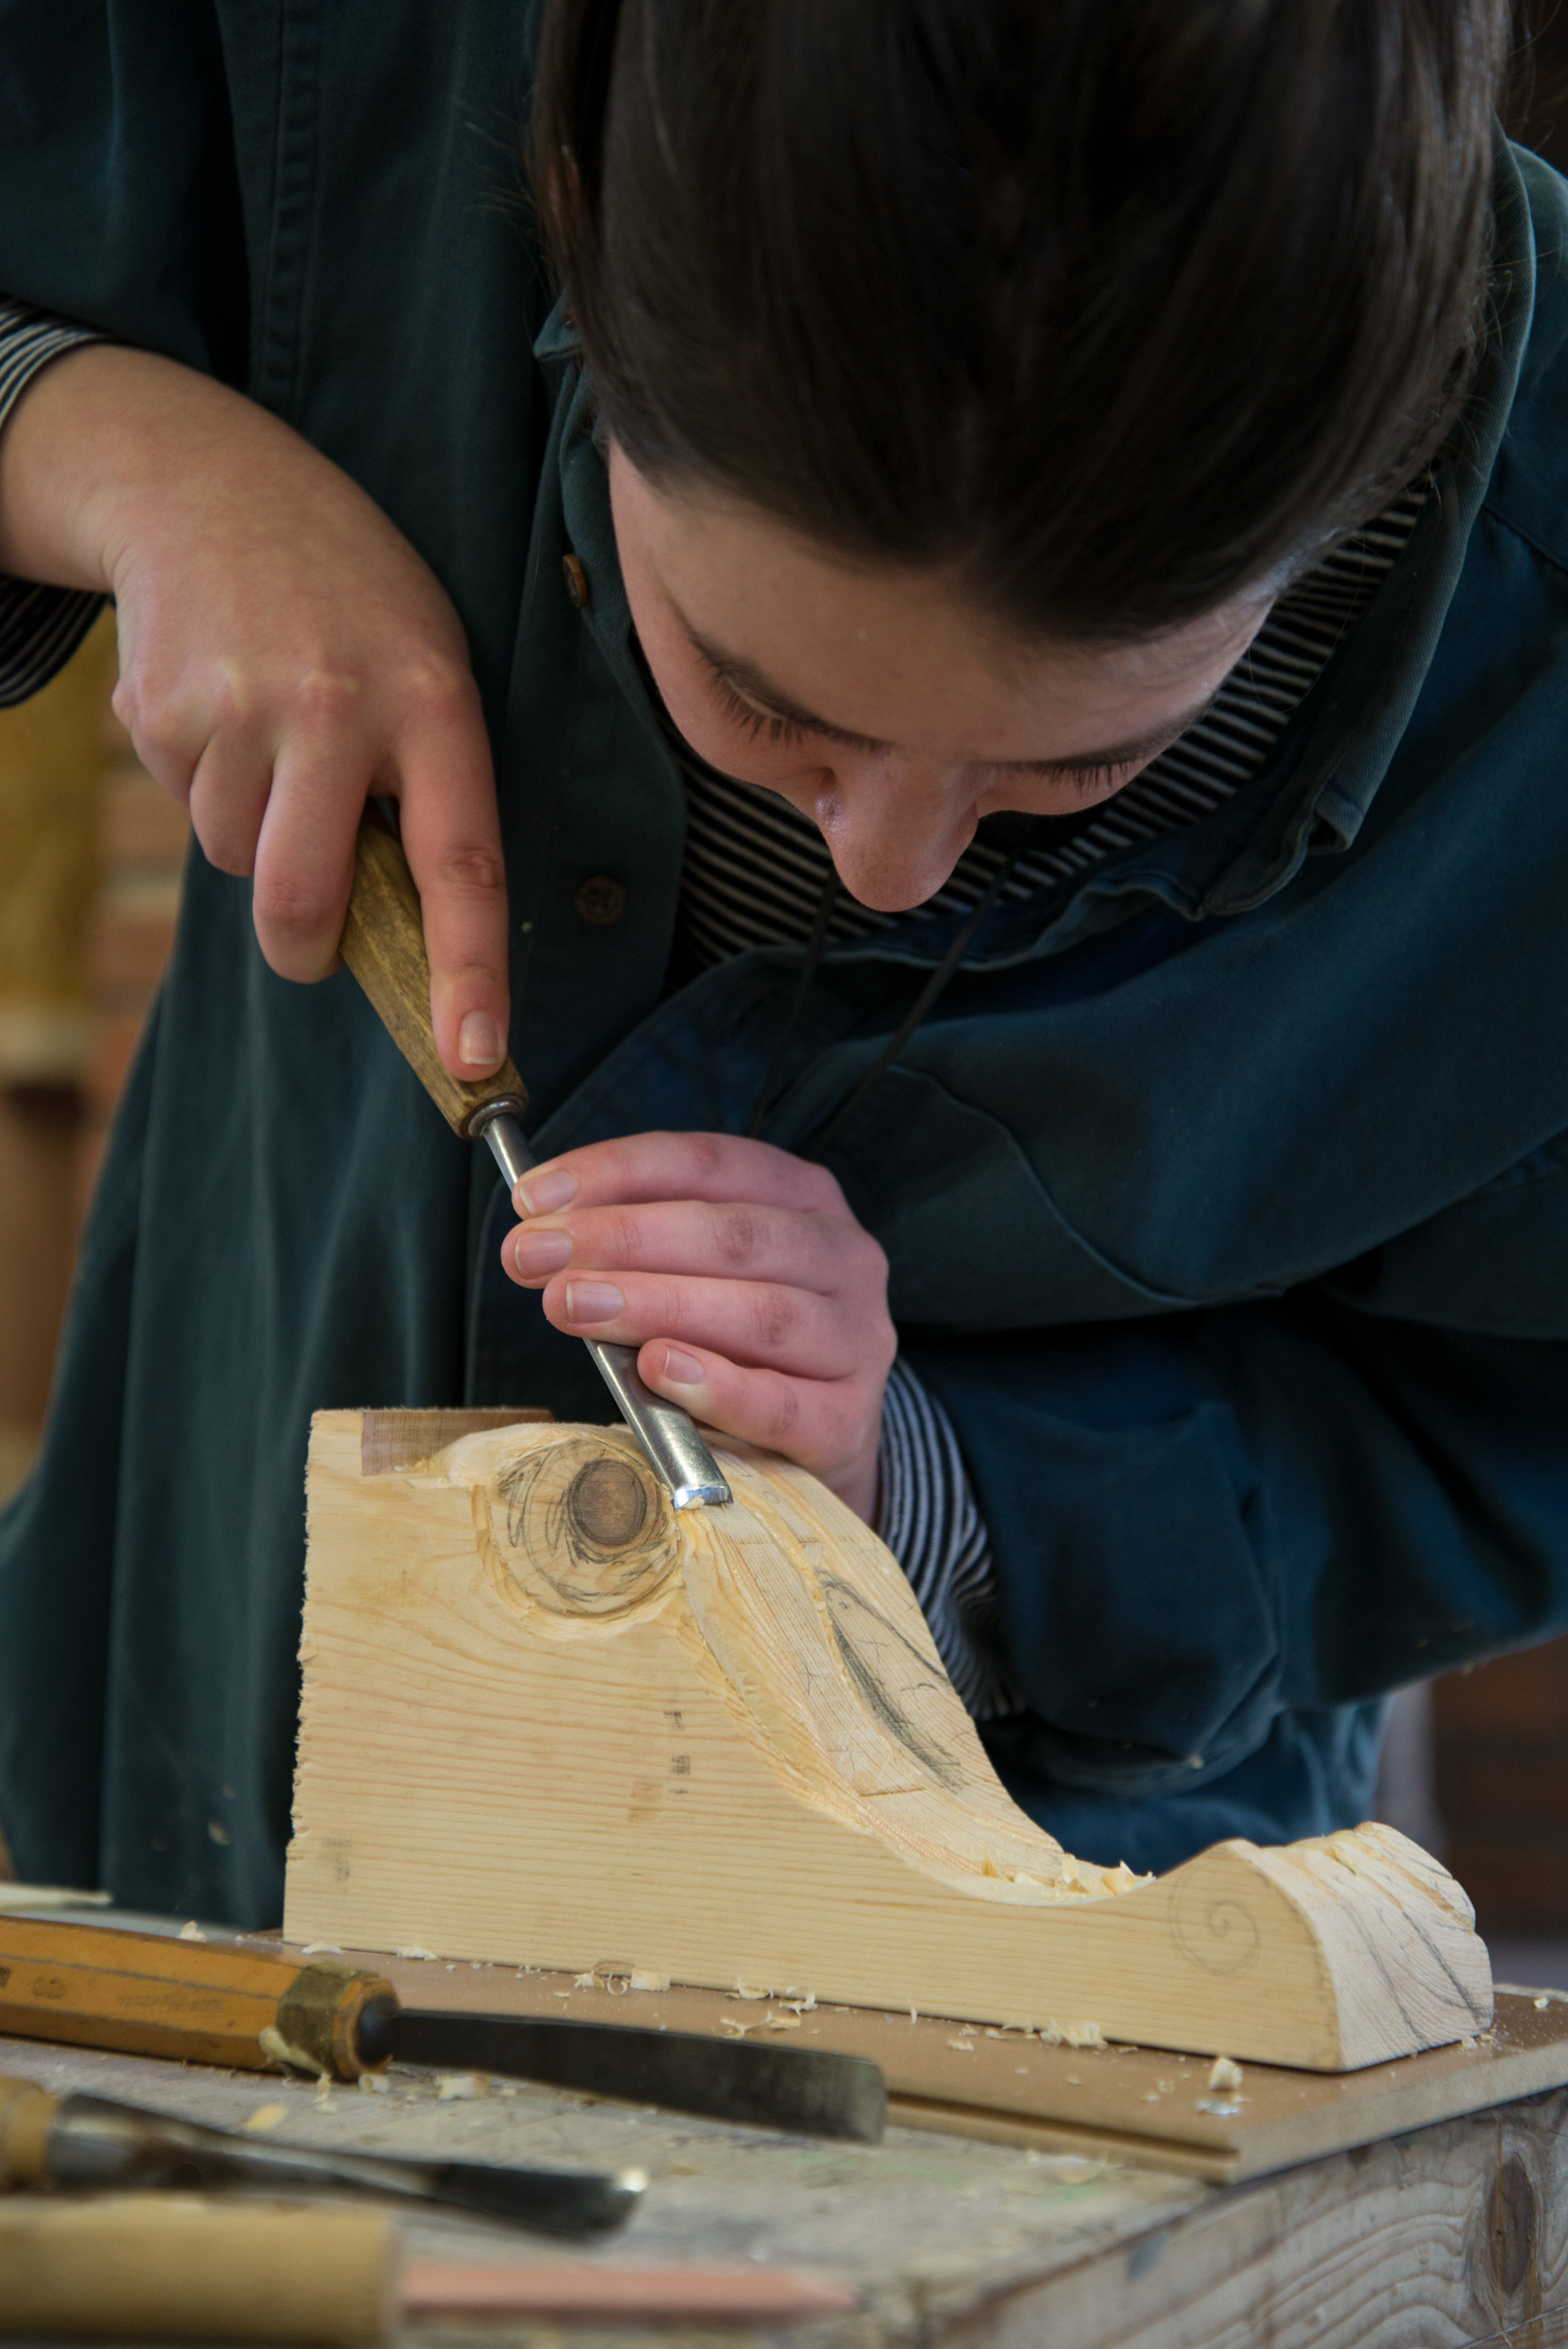 Image of a woman carving a piece of wood